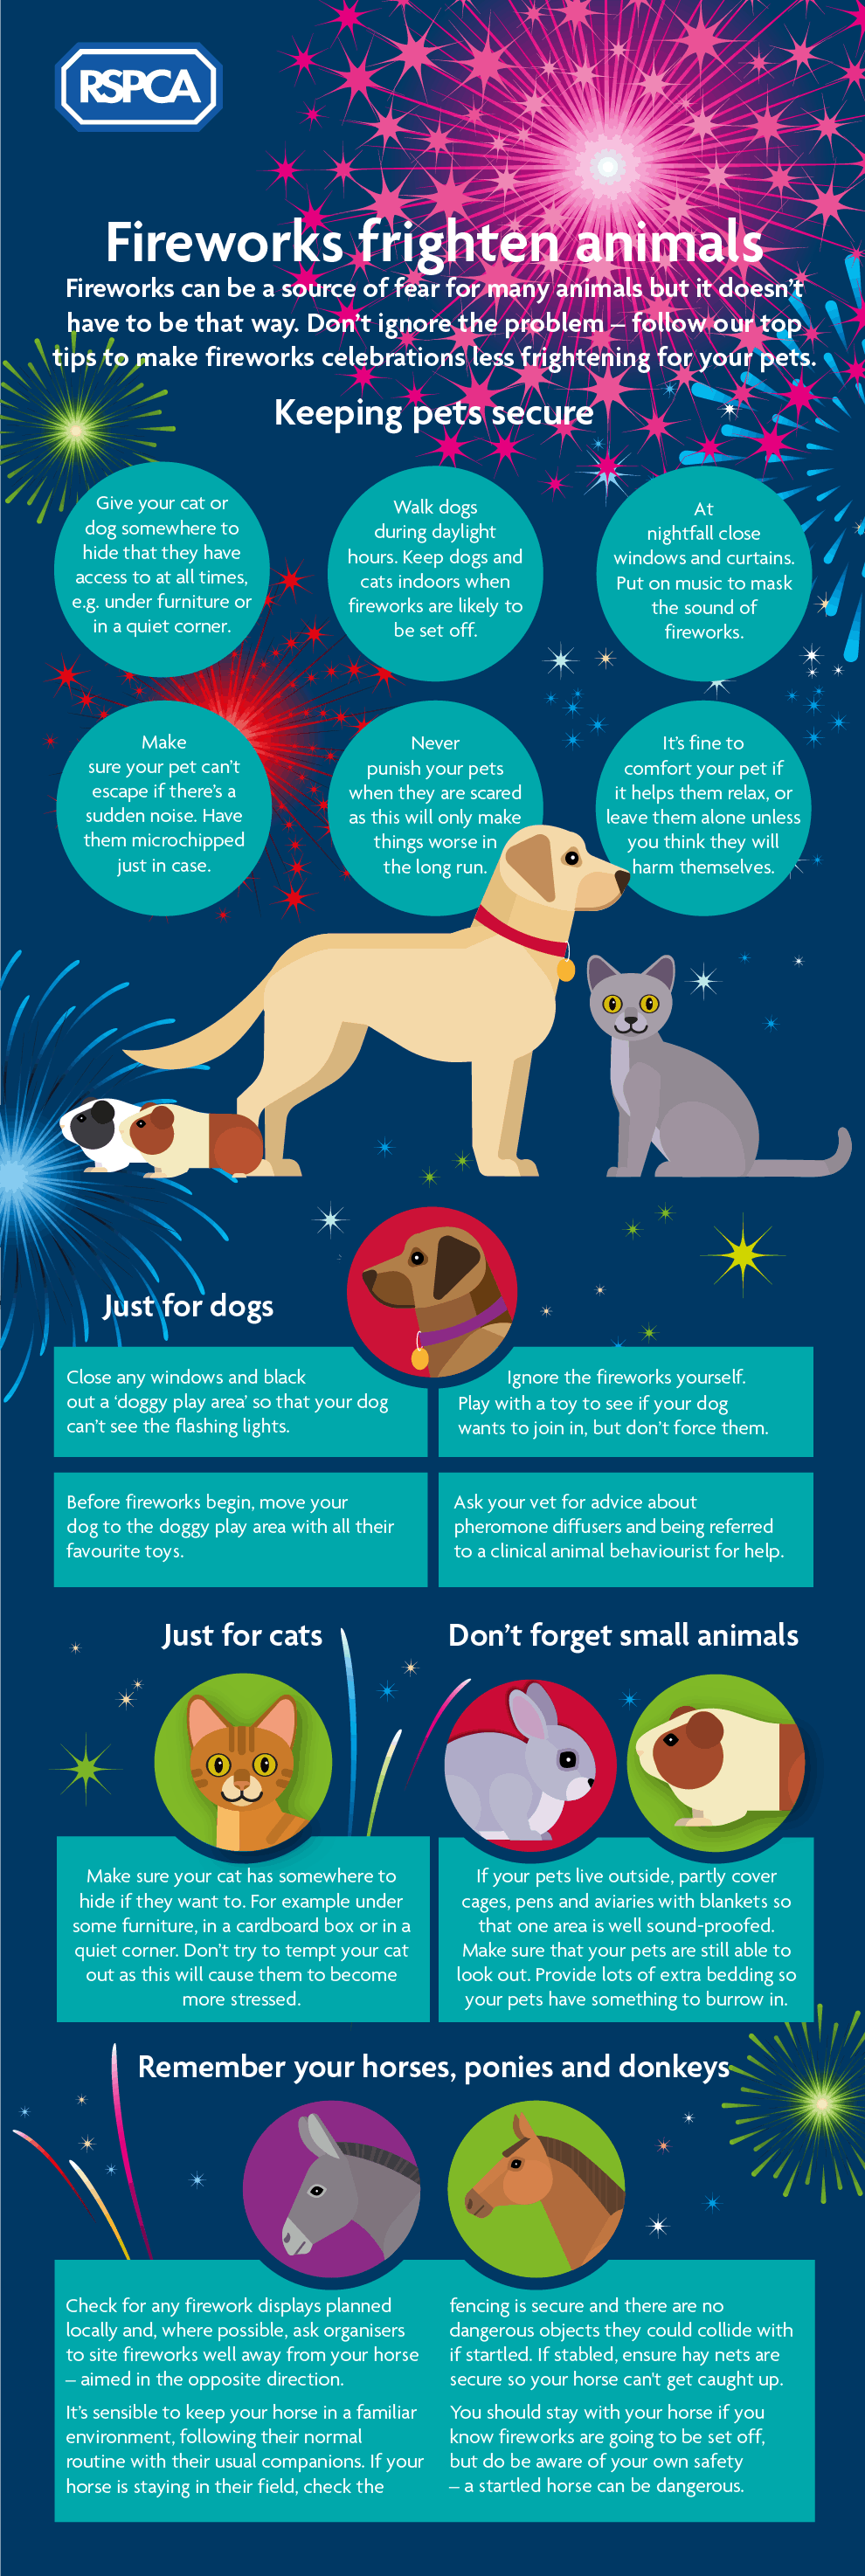 New Year's Eve Fireworks Safety